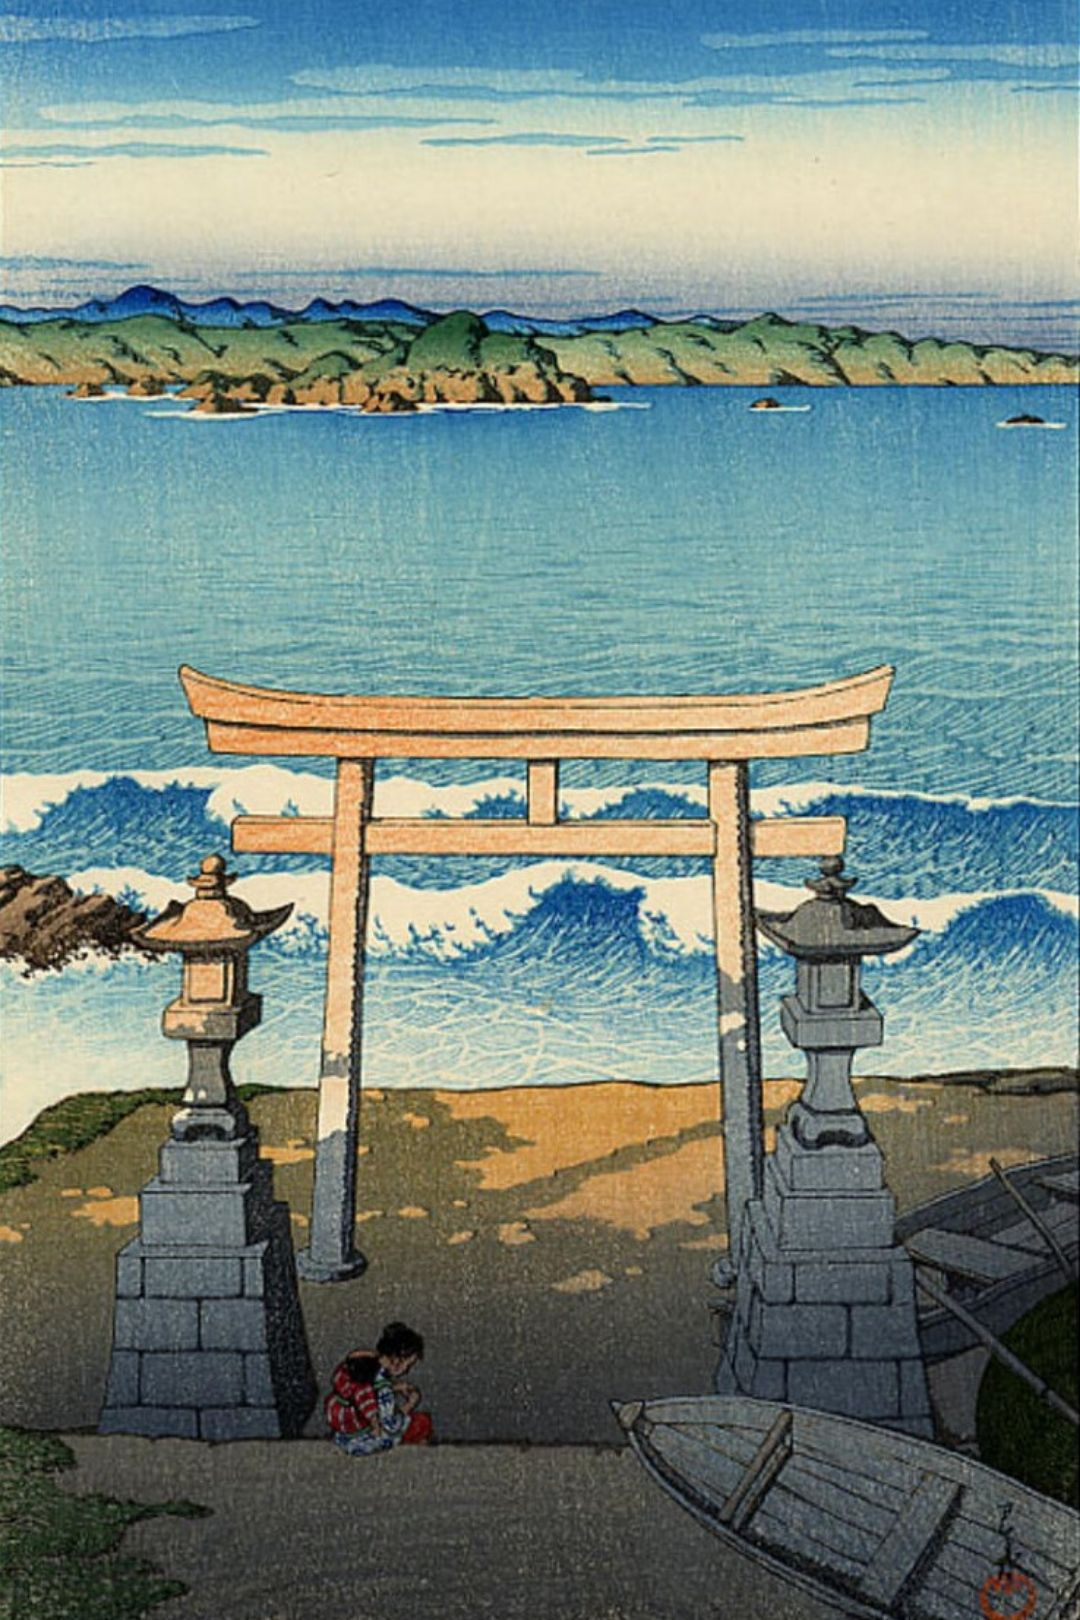 Pacific Ocean - Boshu - by Kawase Hasui - buy fine art print